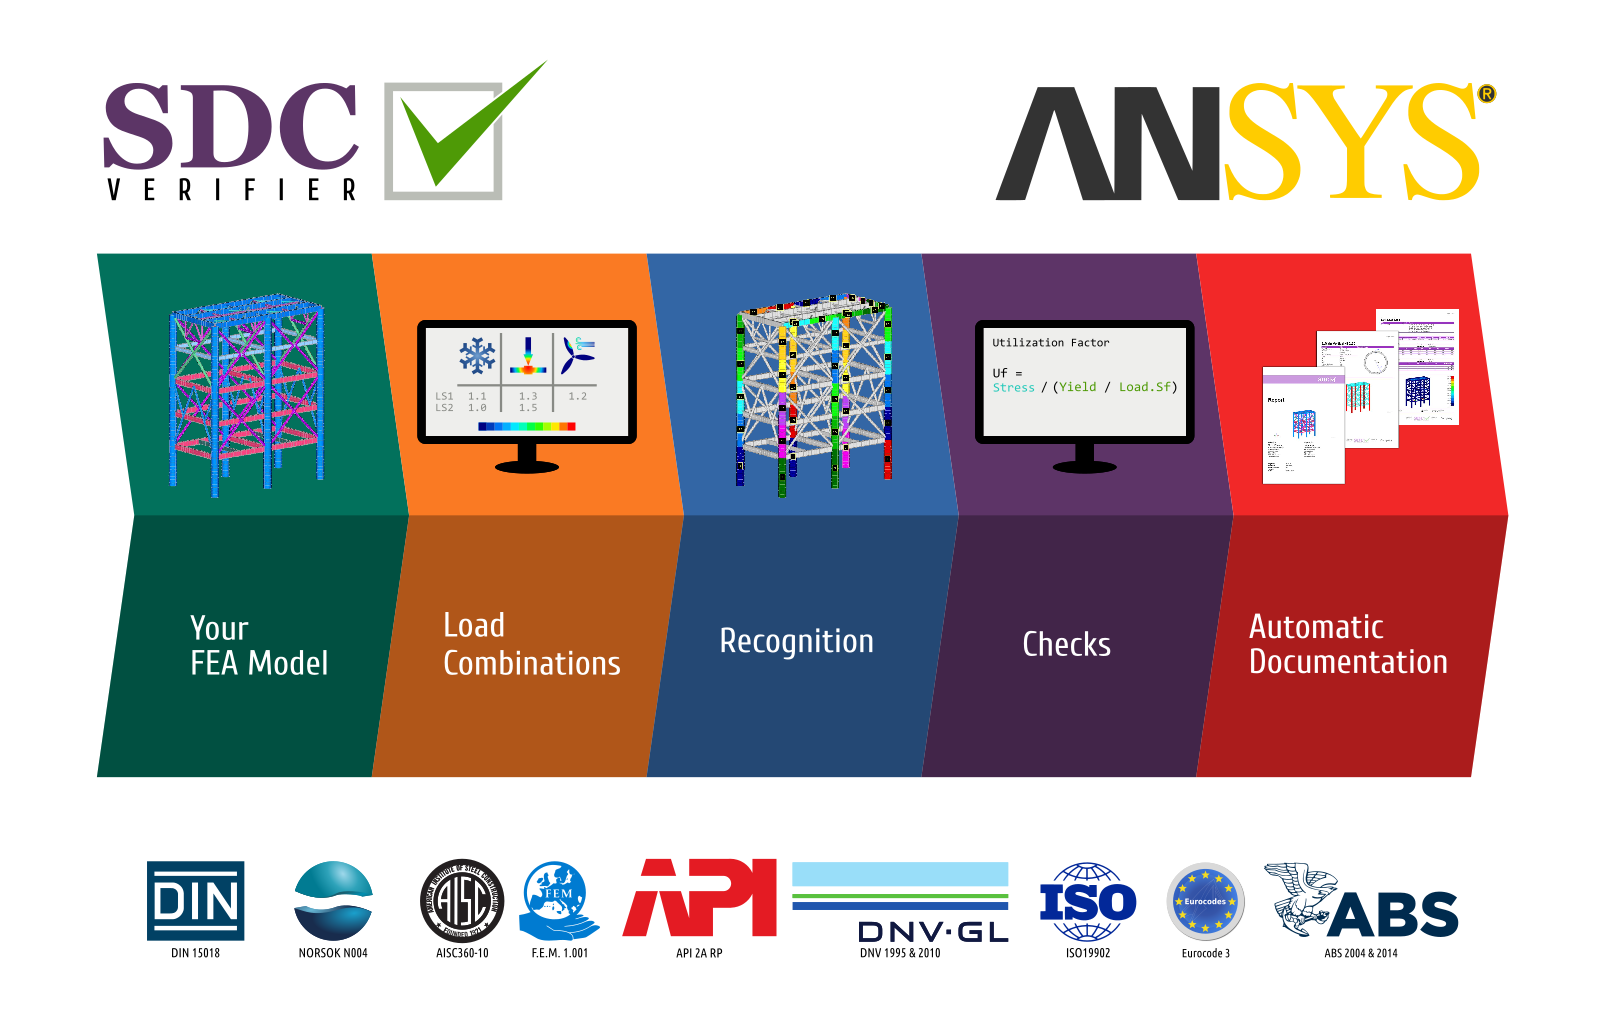 sdc verifier for ansys